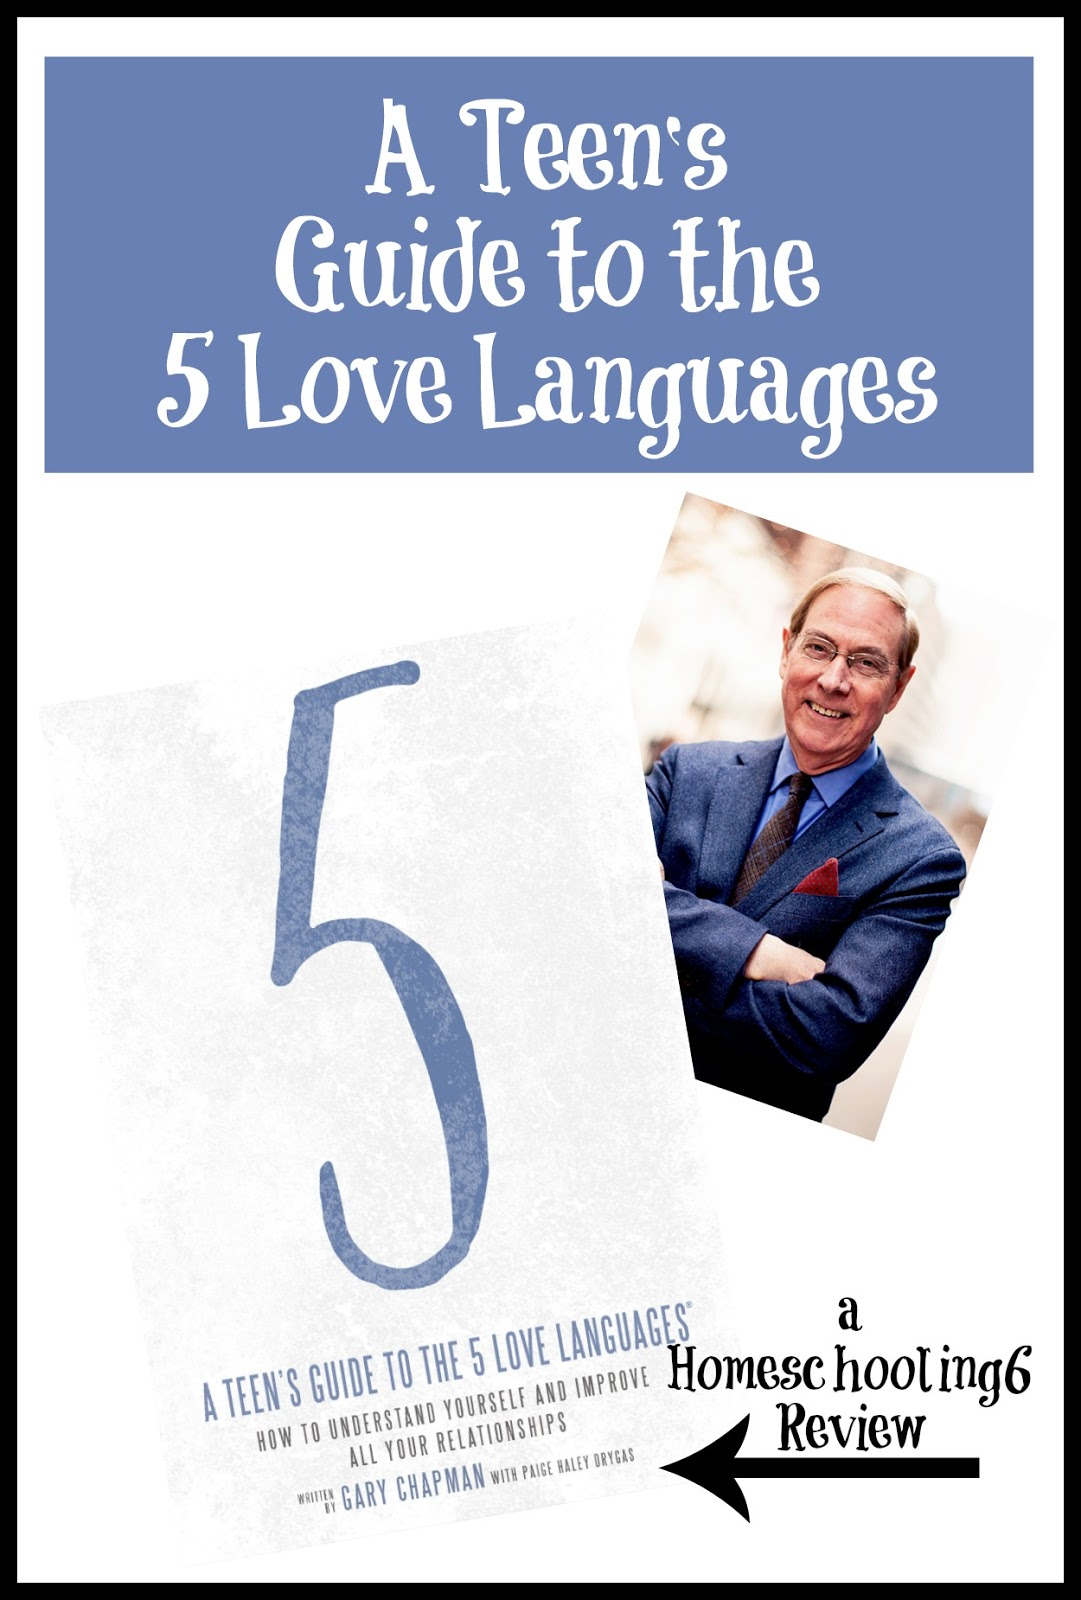 the five love languages Dr chapman explains how people communicate love in different ways, and shares the wonderful things that happen when men and women learn to speak each other's language.